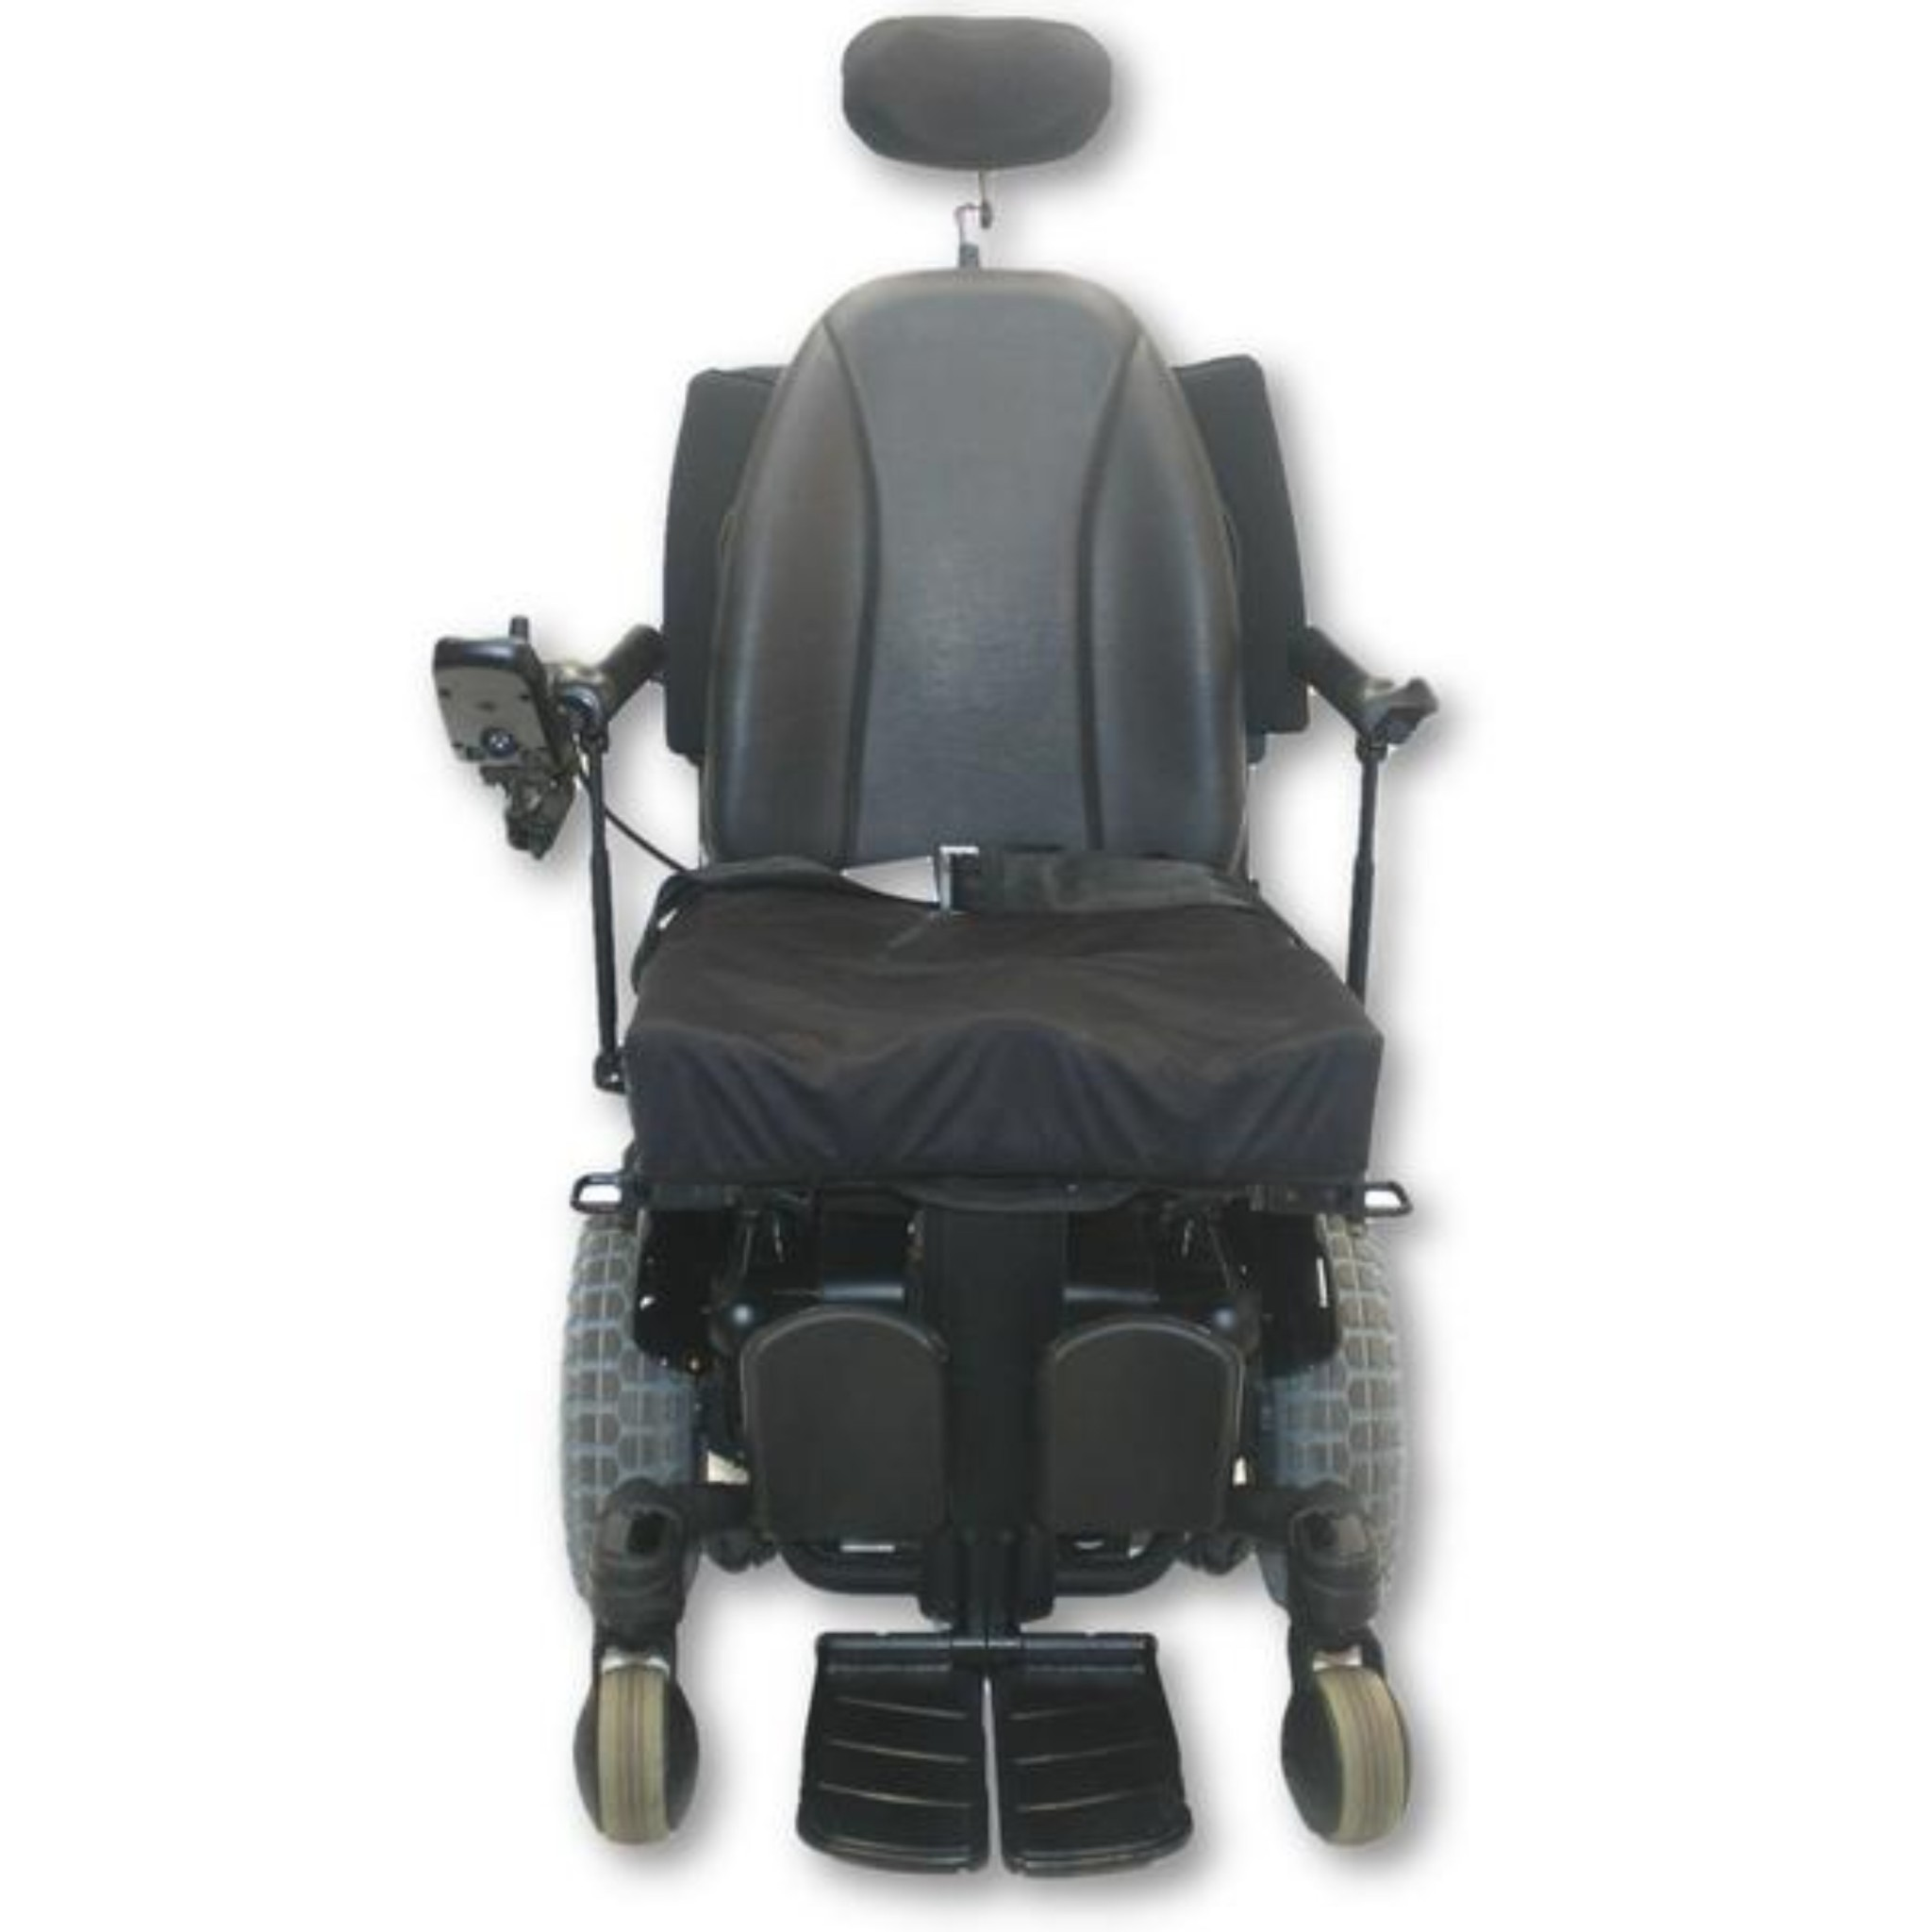 quantum 600 power chair dining covers in pakistan off road wheelchair hd knobby tires pride